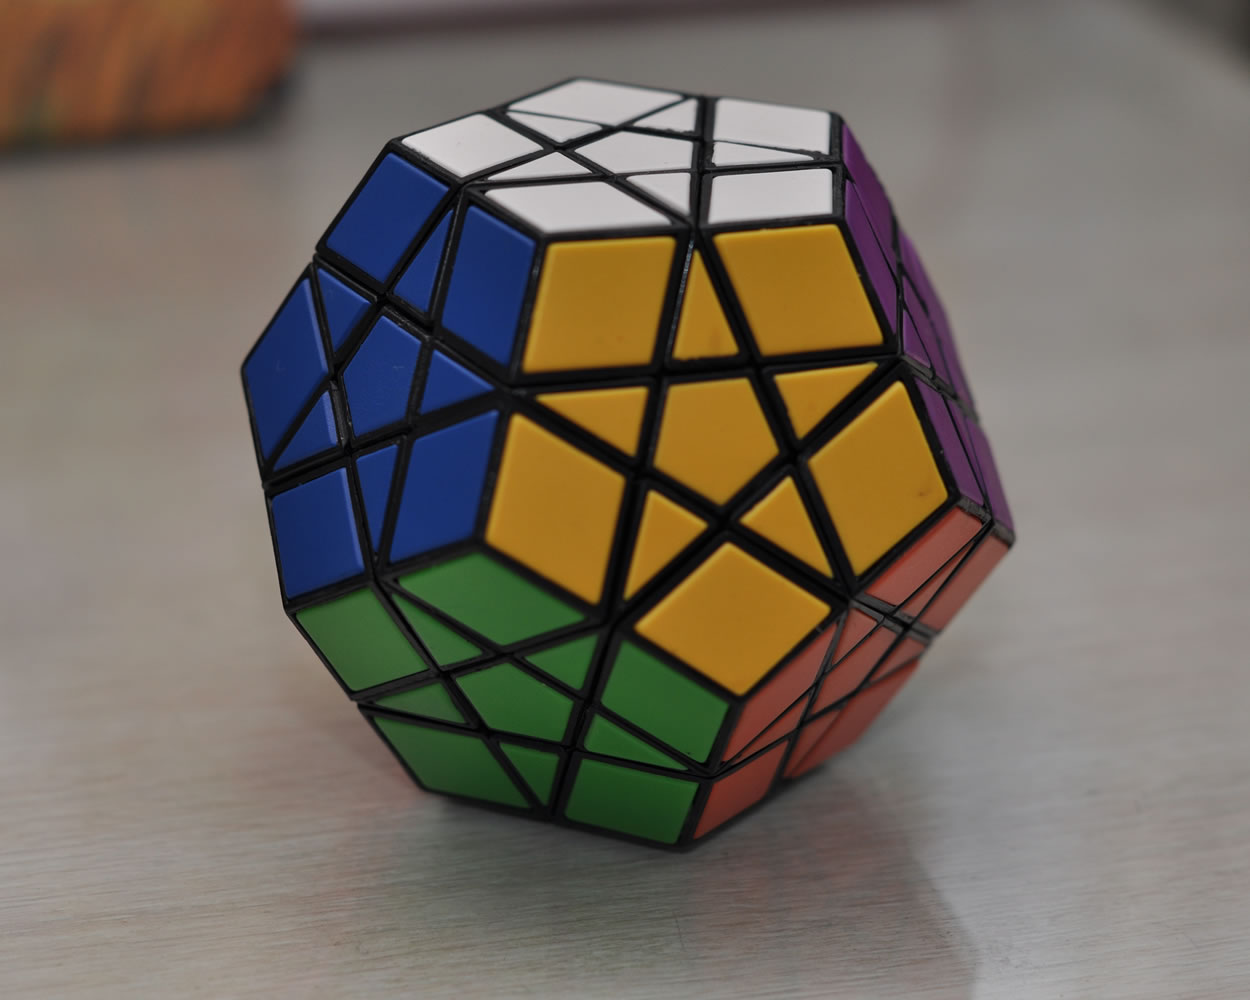 This is one of the cheapest, yet usable megaminx puzzles I could get.